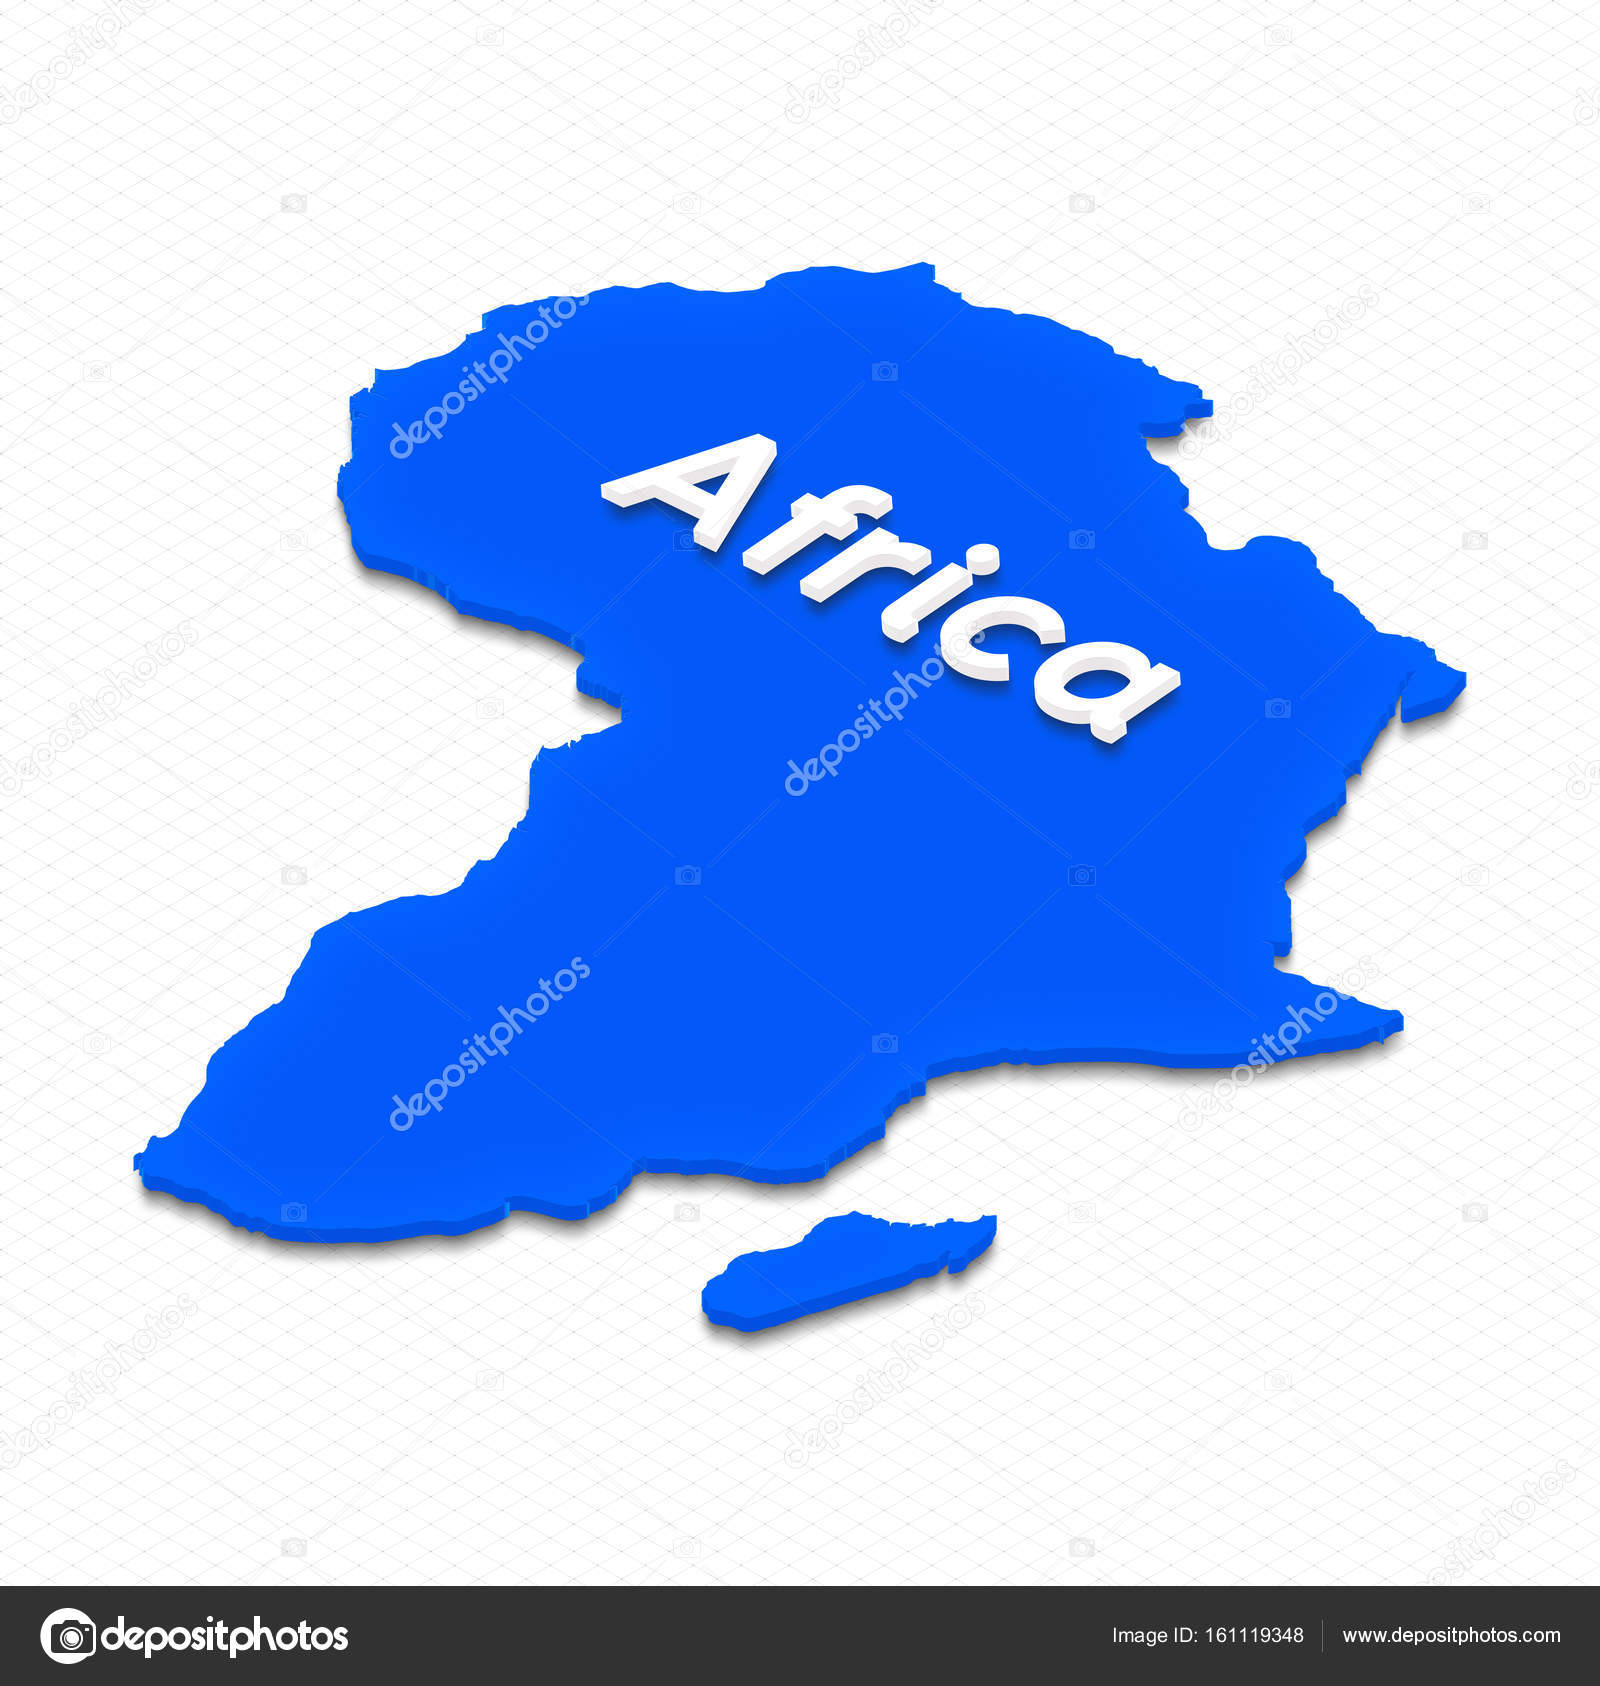 Map Of Africa 3d.Map Of Africa 3d Isometric Illustration Stock Photo C Sanches812